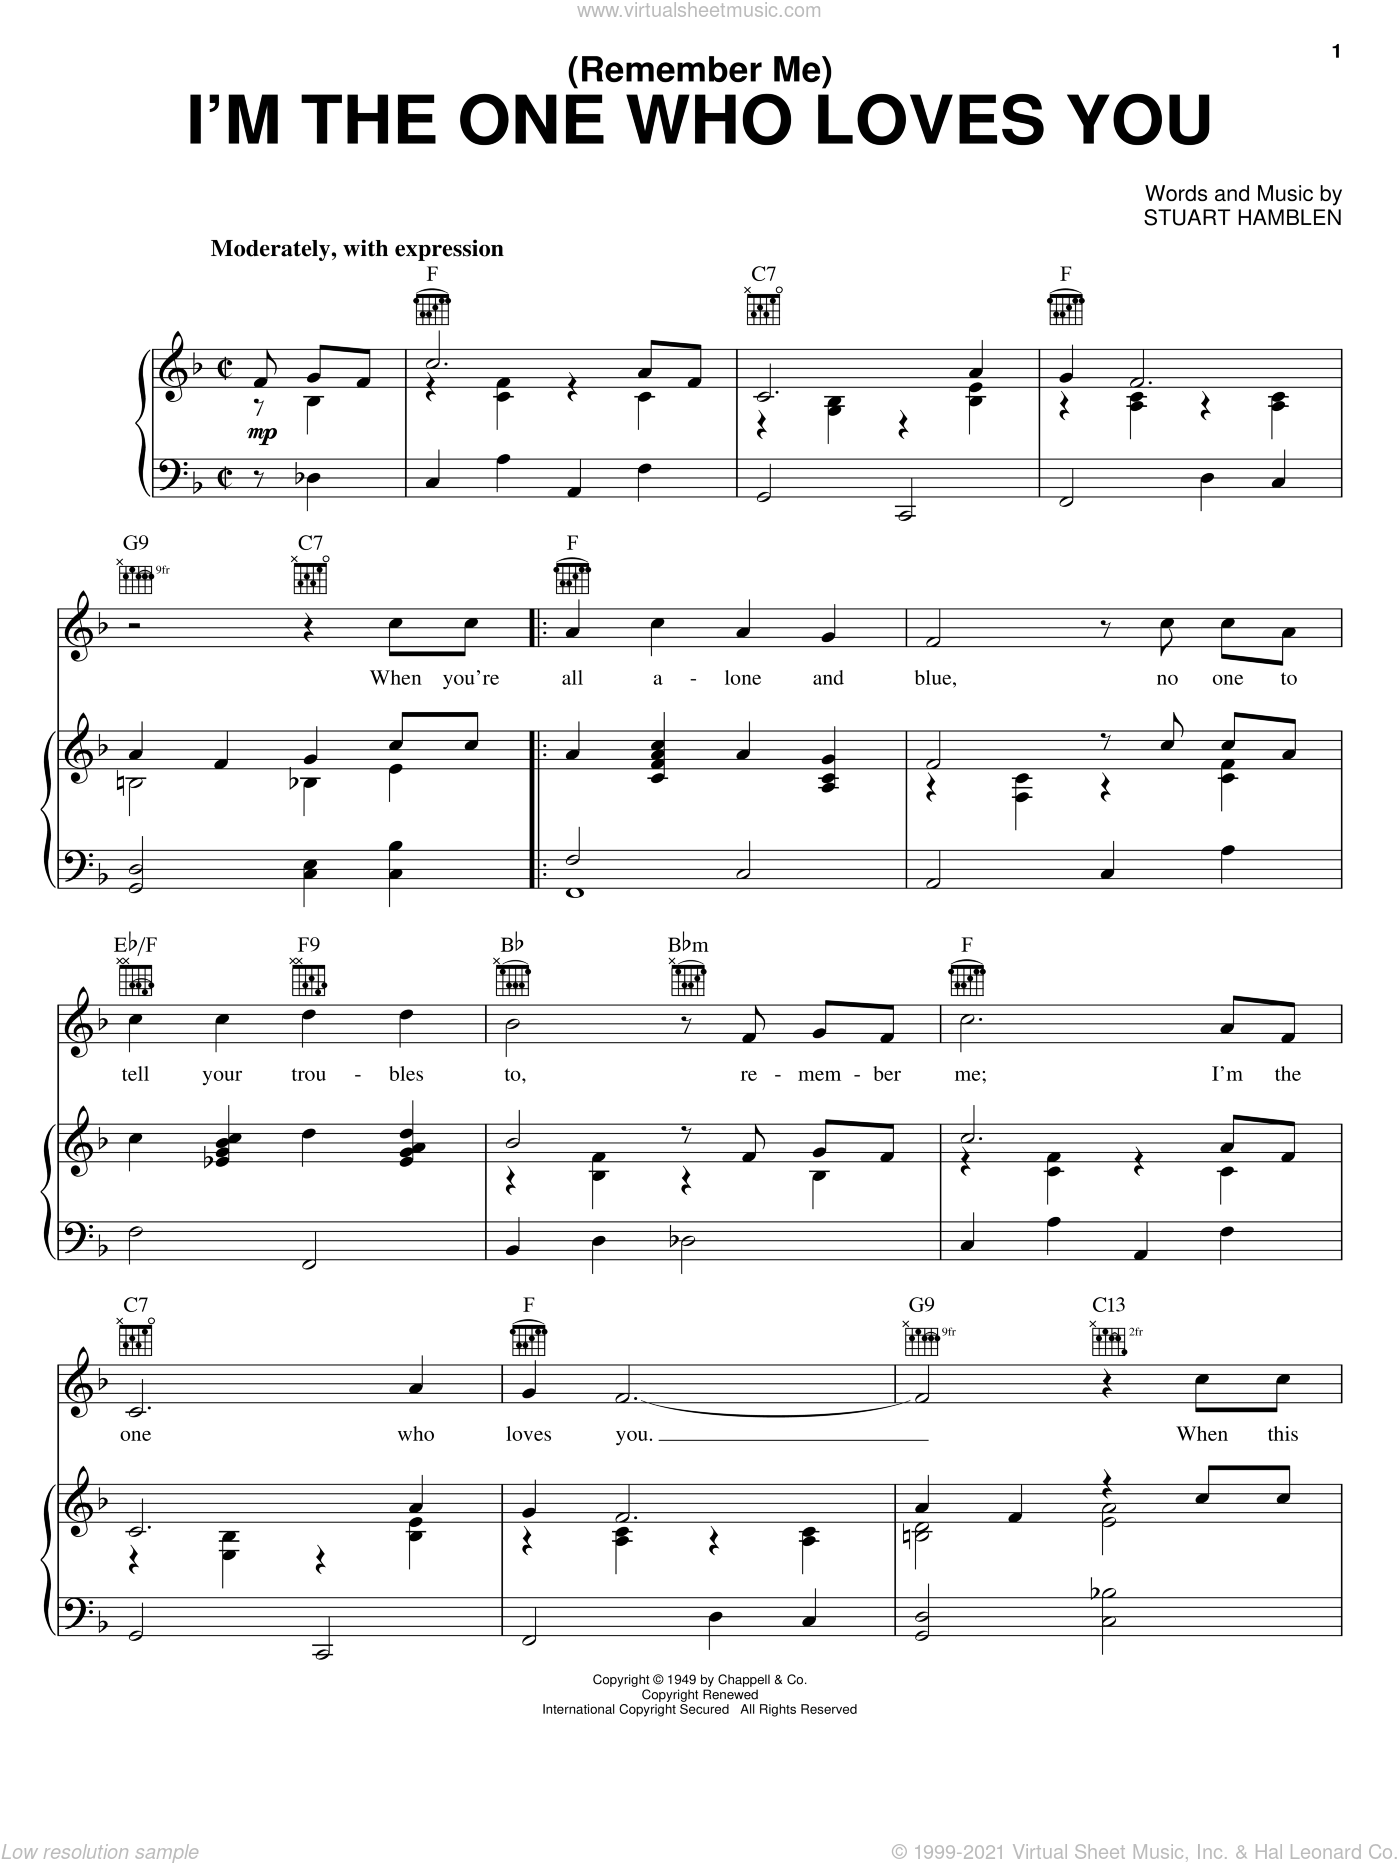 (Remember Me) I'm The One Who Loves You sheet music for voice, piano or guitar by Stuart Hamblen and Ernest Tubb. Score Image Preview.